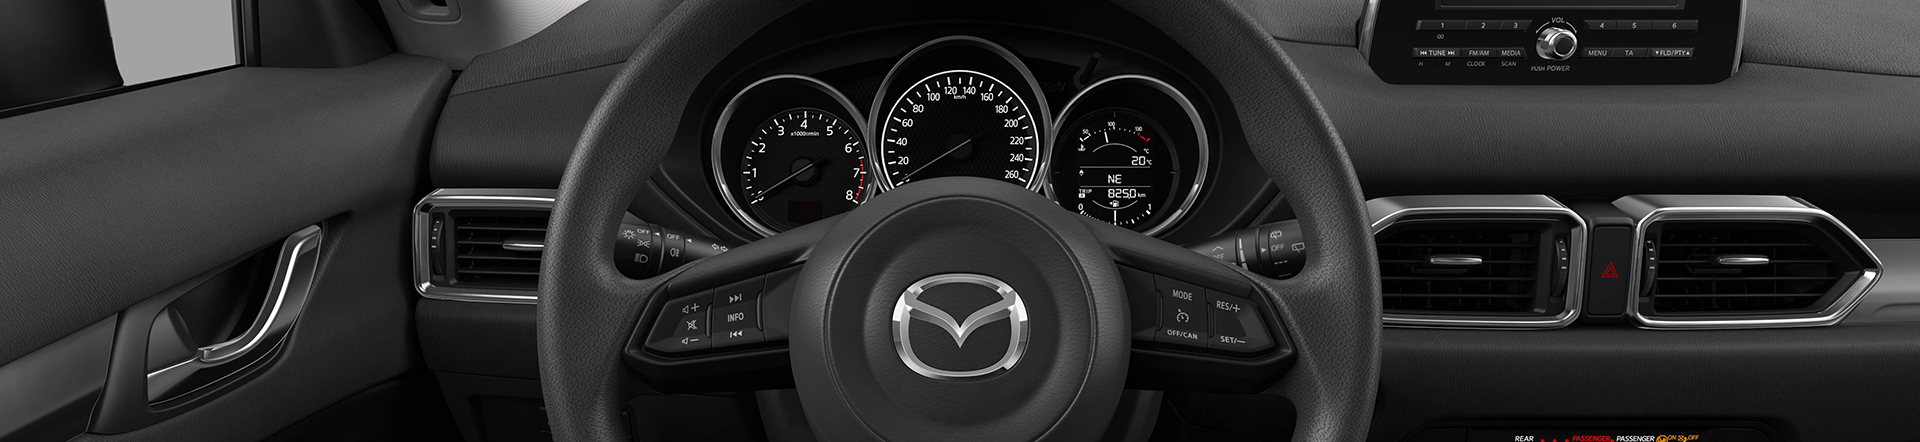 Mazda MX-5 Modellabbildung, Headerbild Cockpitansicht